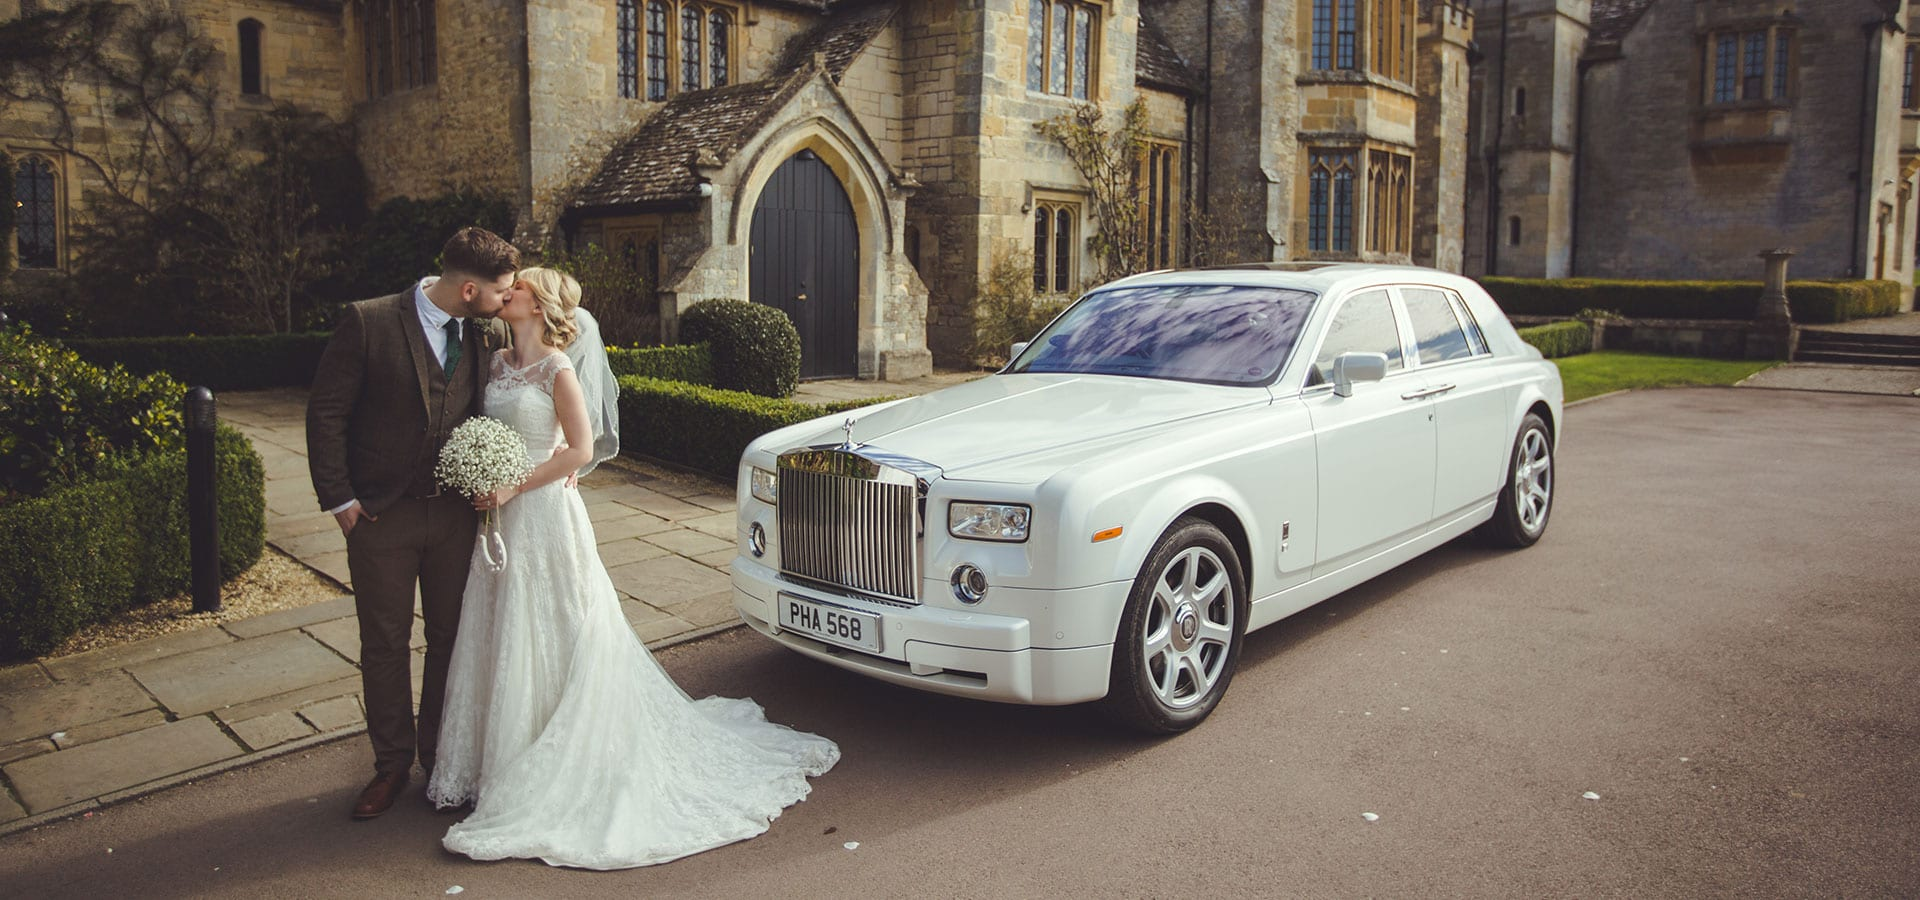 Rolls-Royce-Phantom-Wedding-Car-Ellenborough-Couple